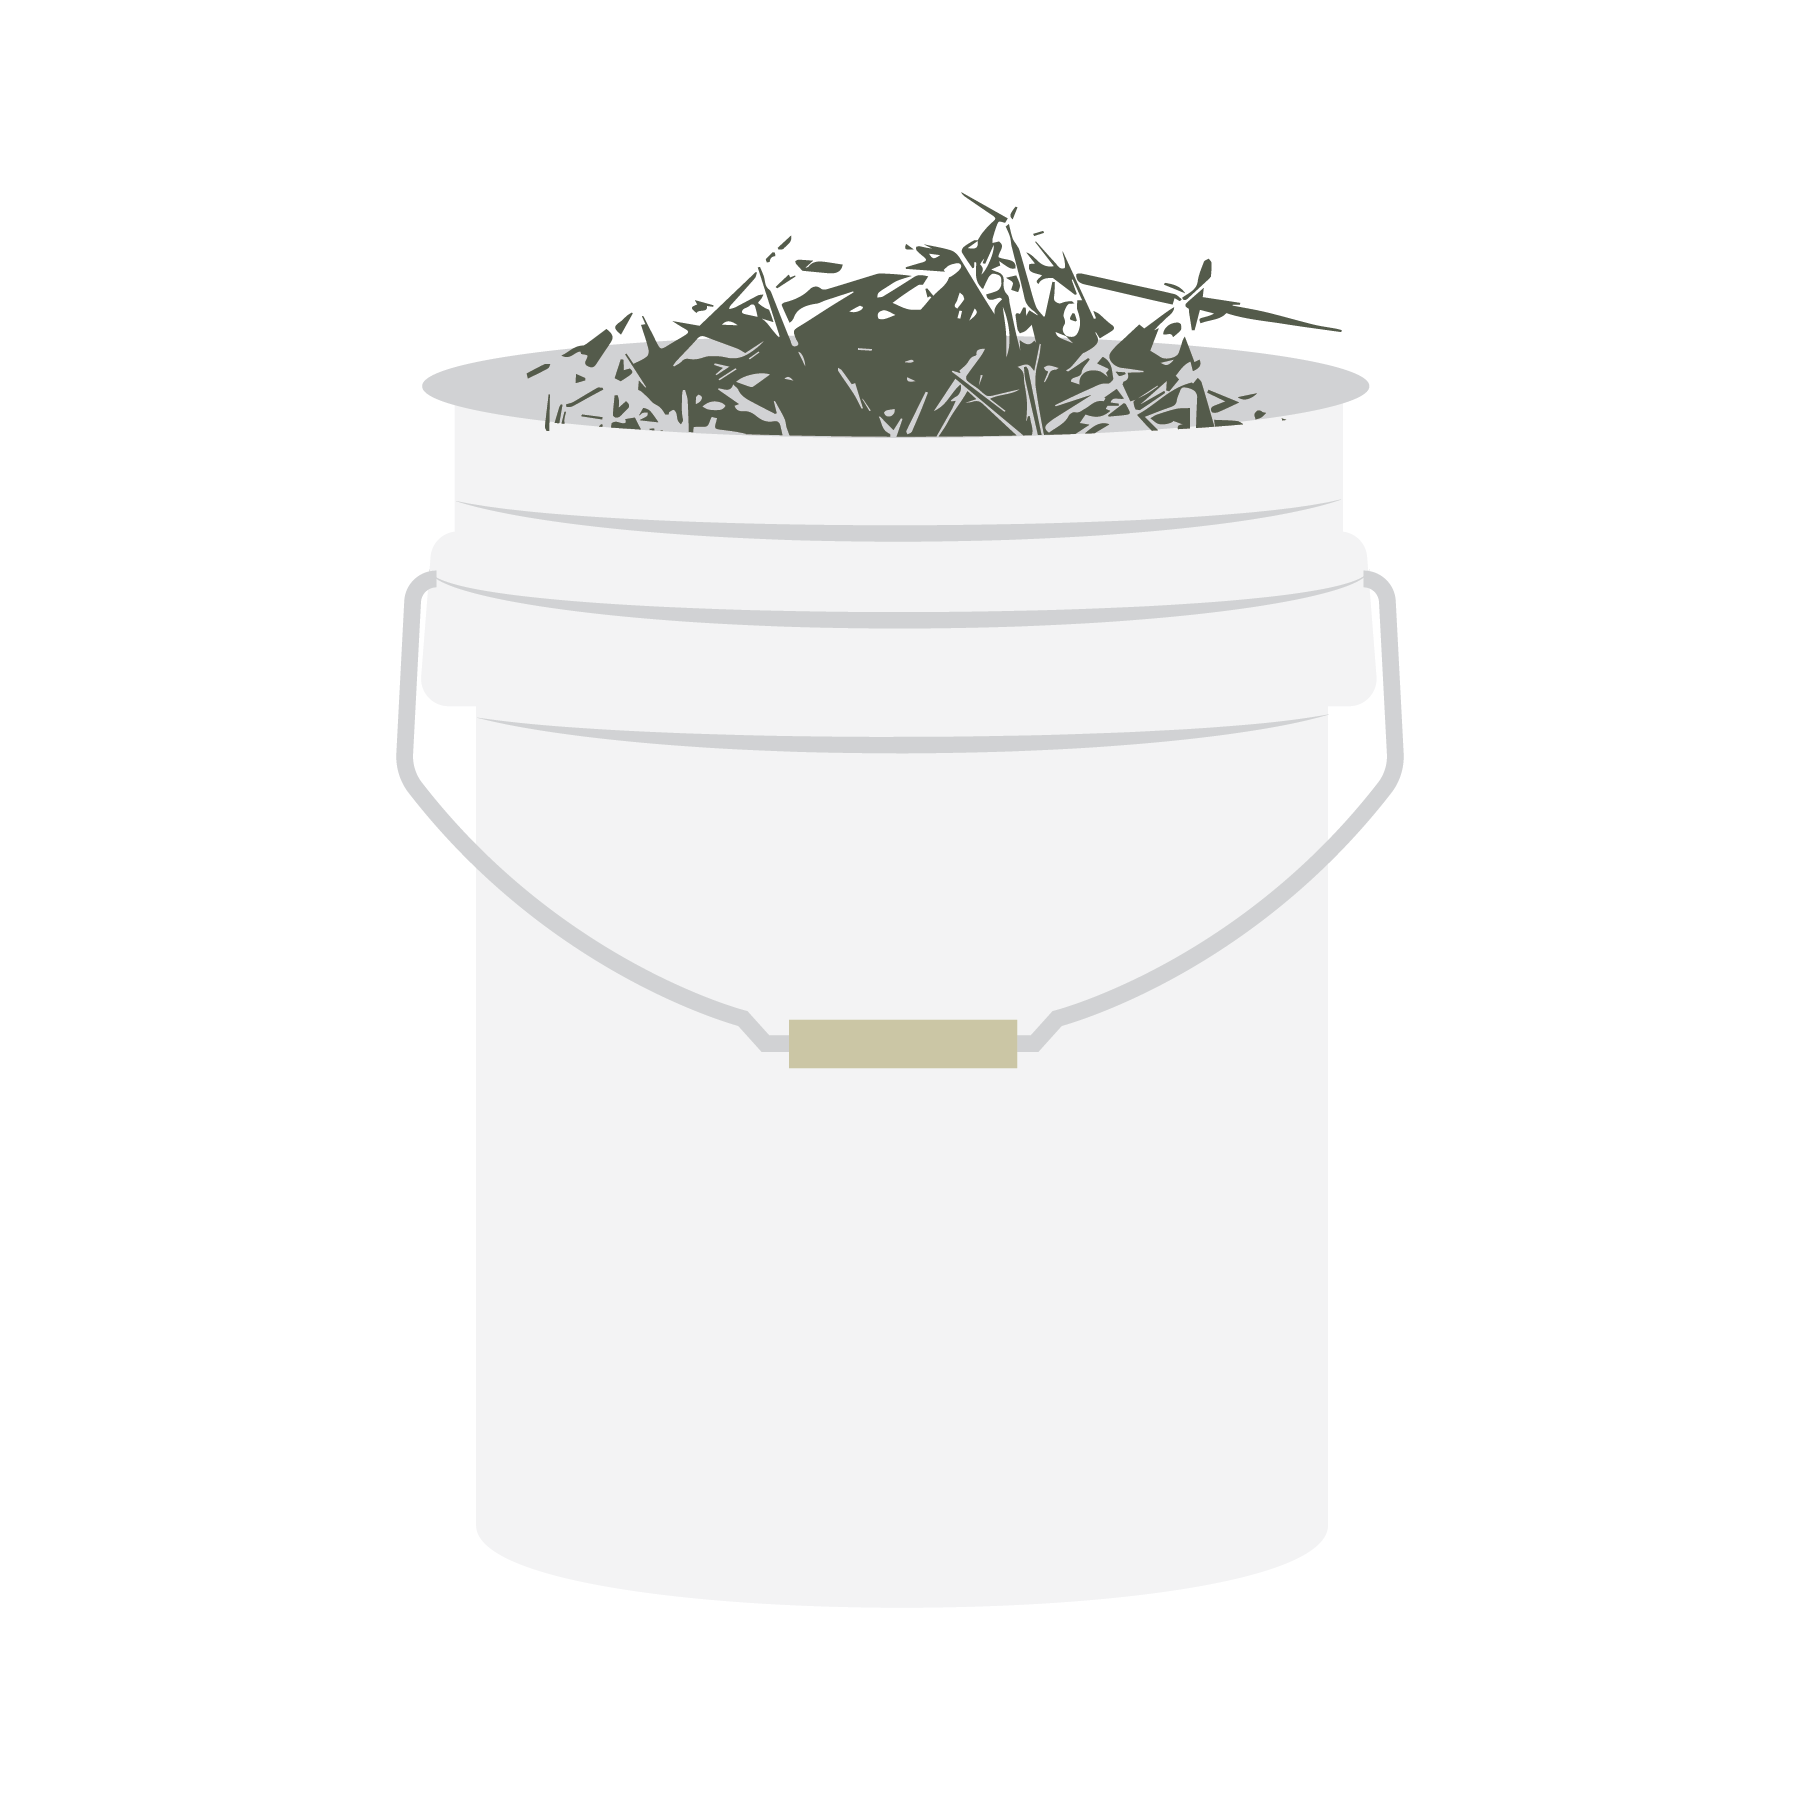 compost-01.png